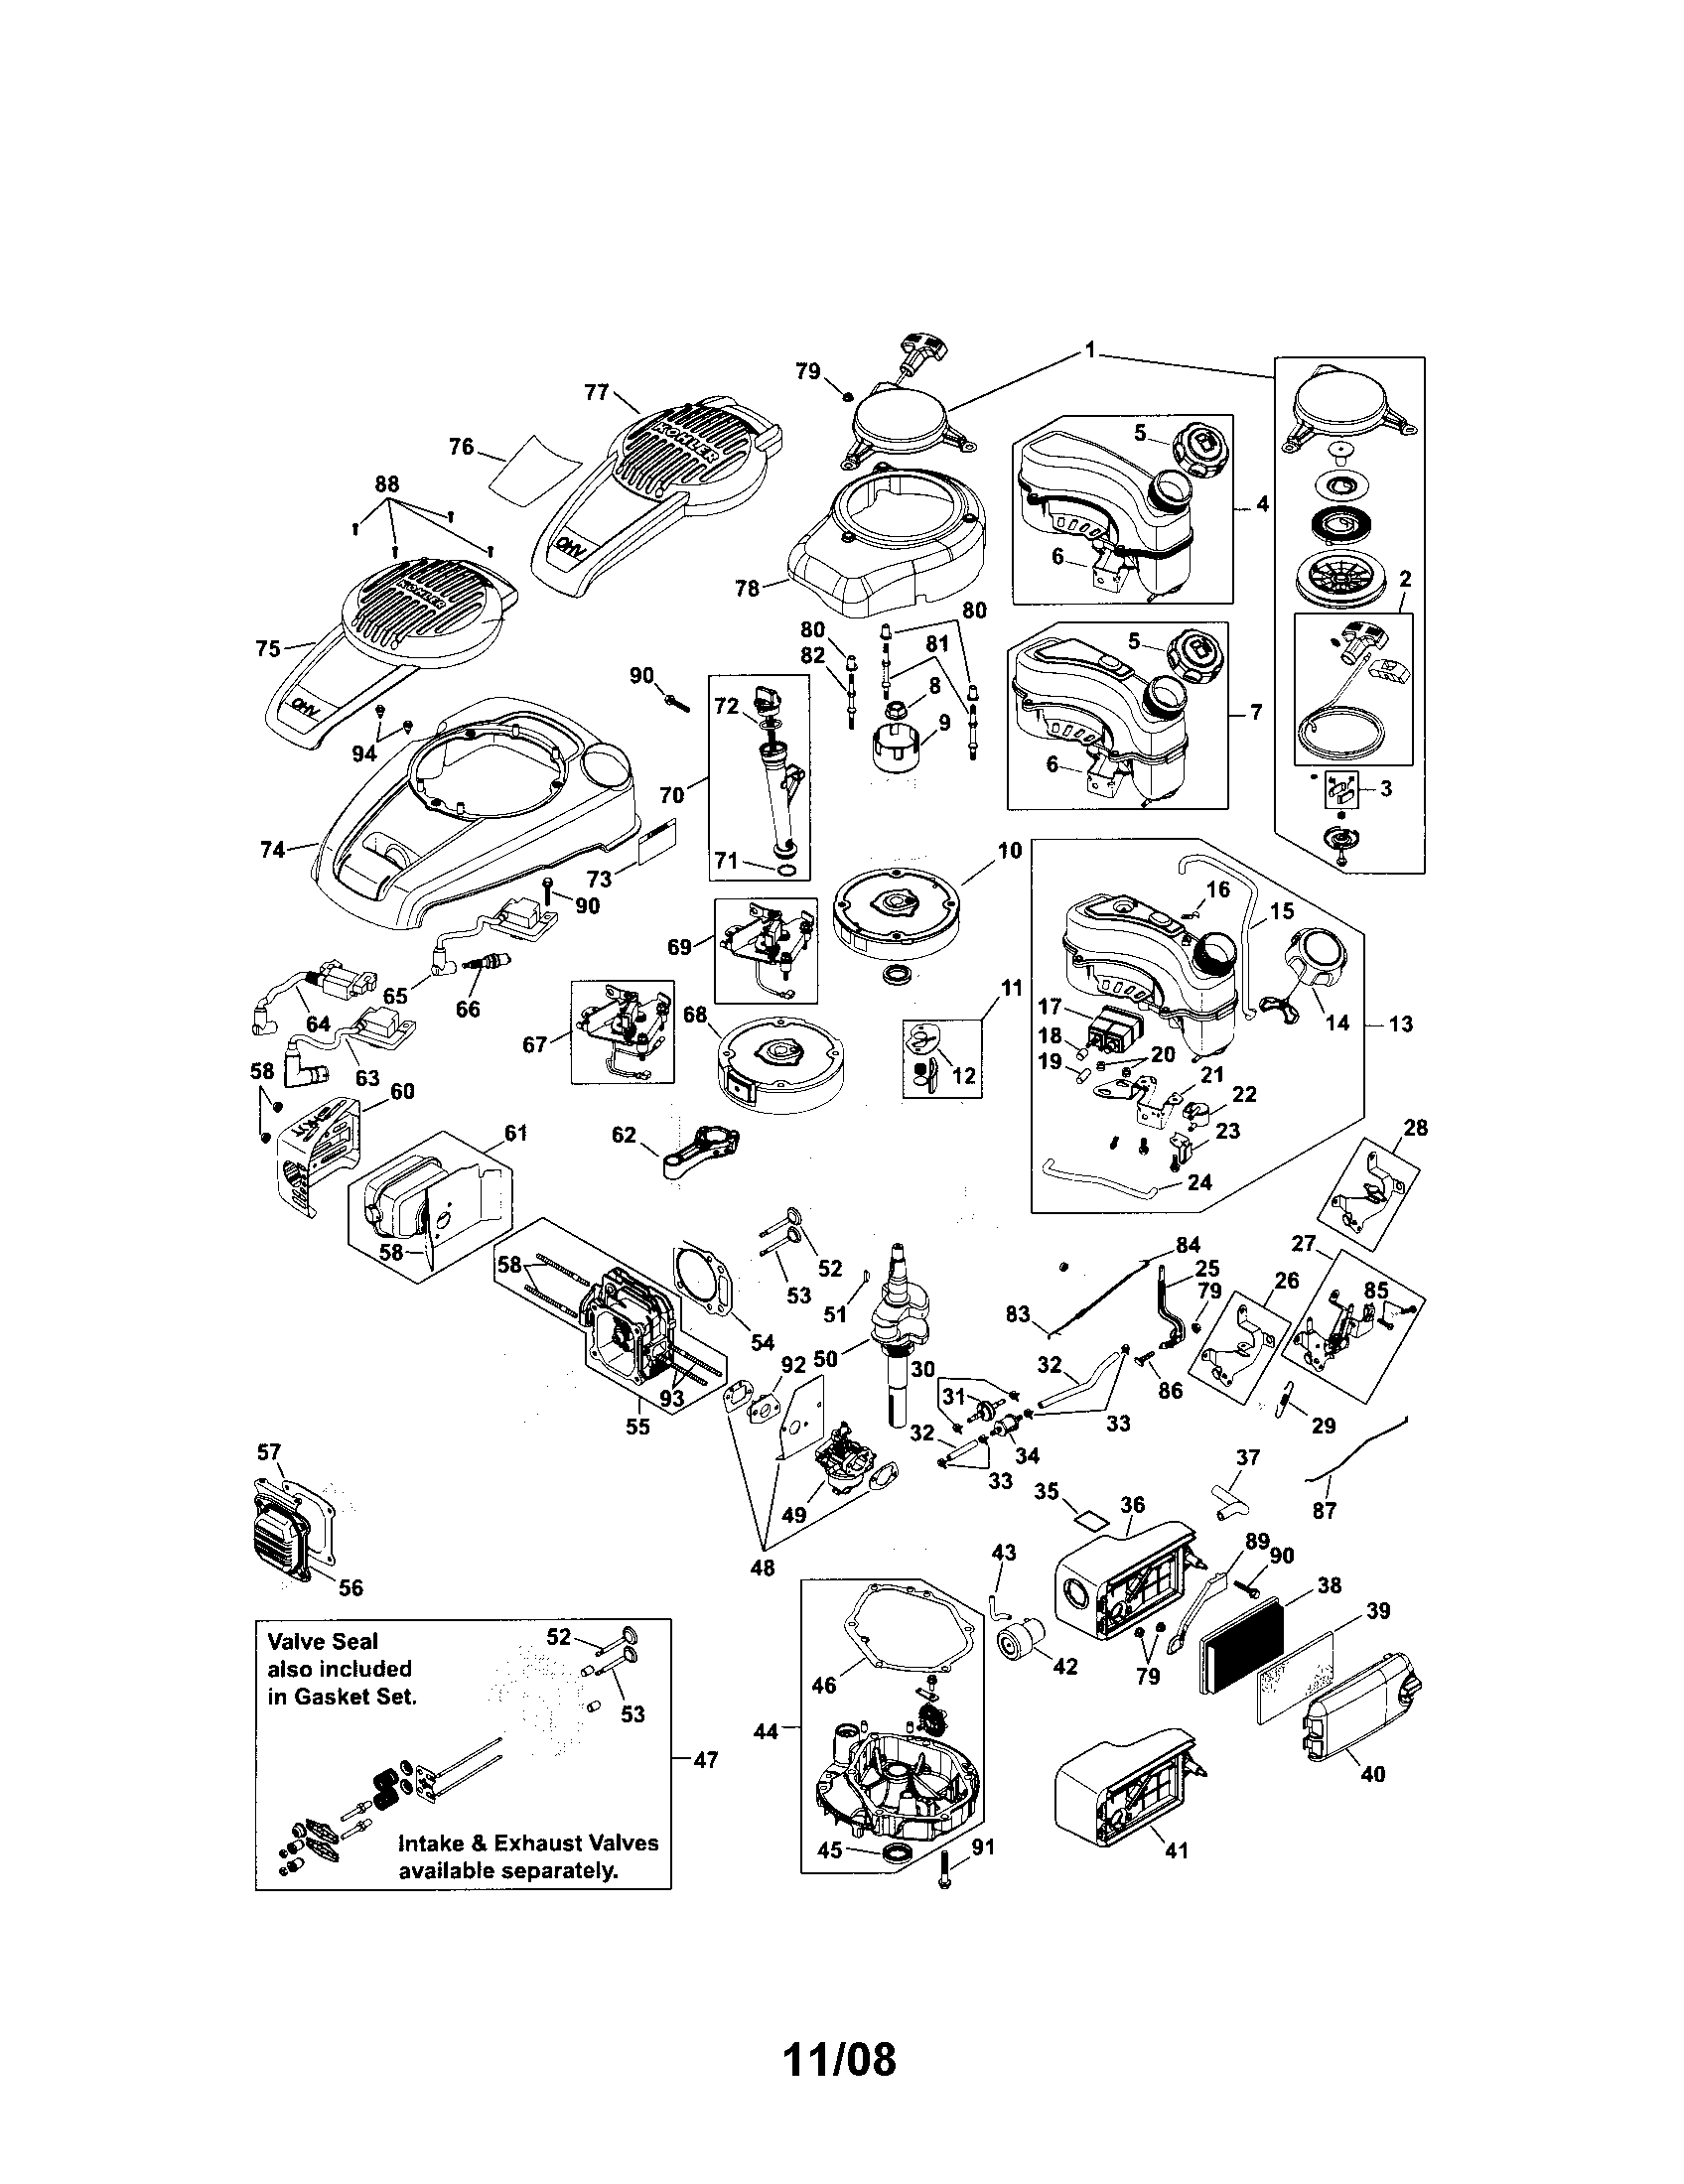 Kohler Engine List, Kohler, Free Engine Image For User